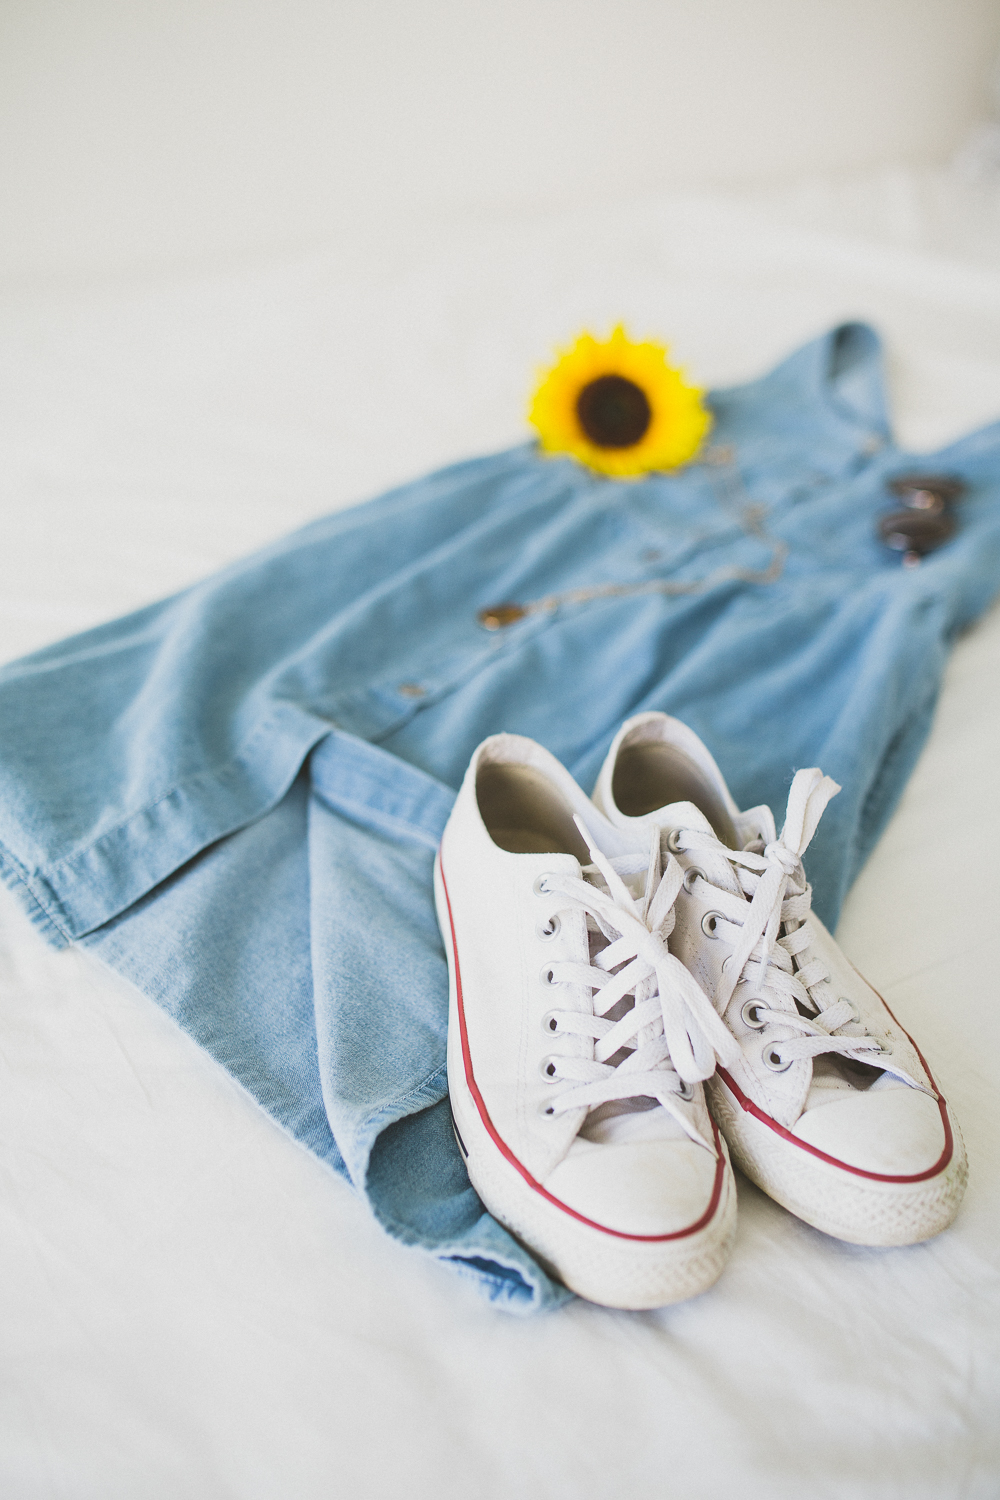 Hipster Outfit example image 1